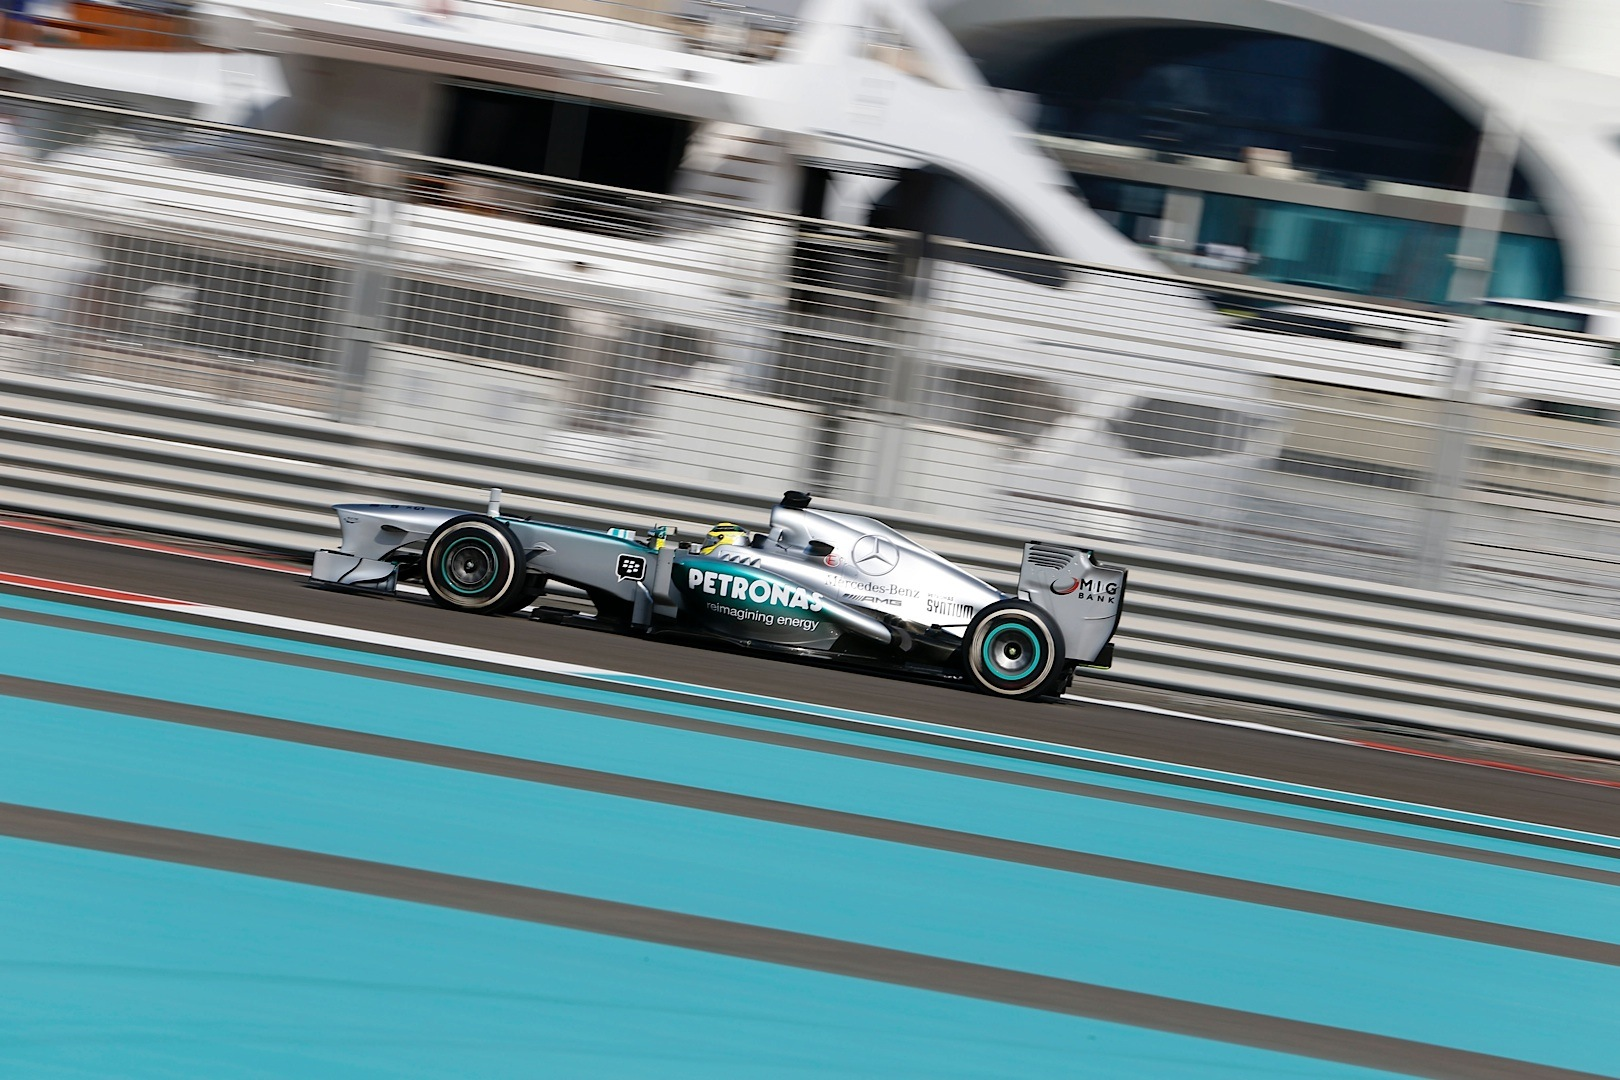 mercedes amg petronas drivers complete yas marina gp practice autoevolution. Black Bedroom Furniture Sets. Home Design Ideas